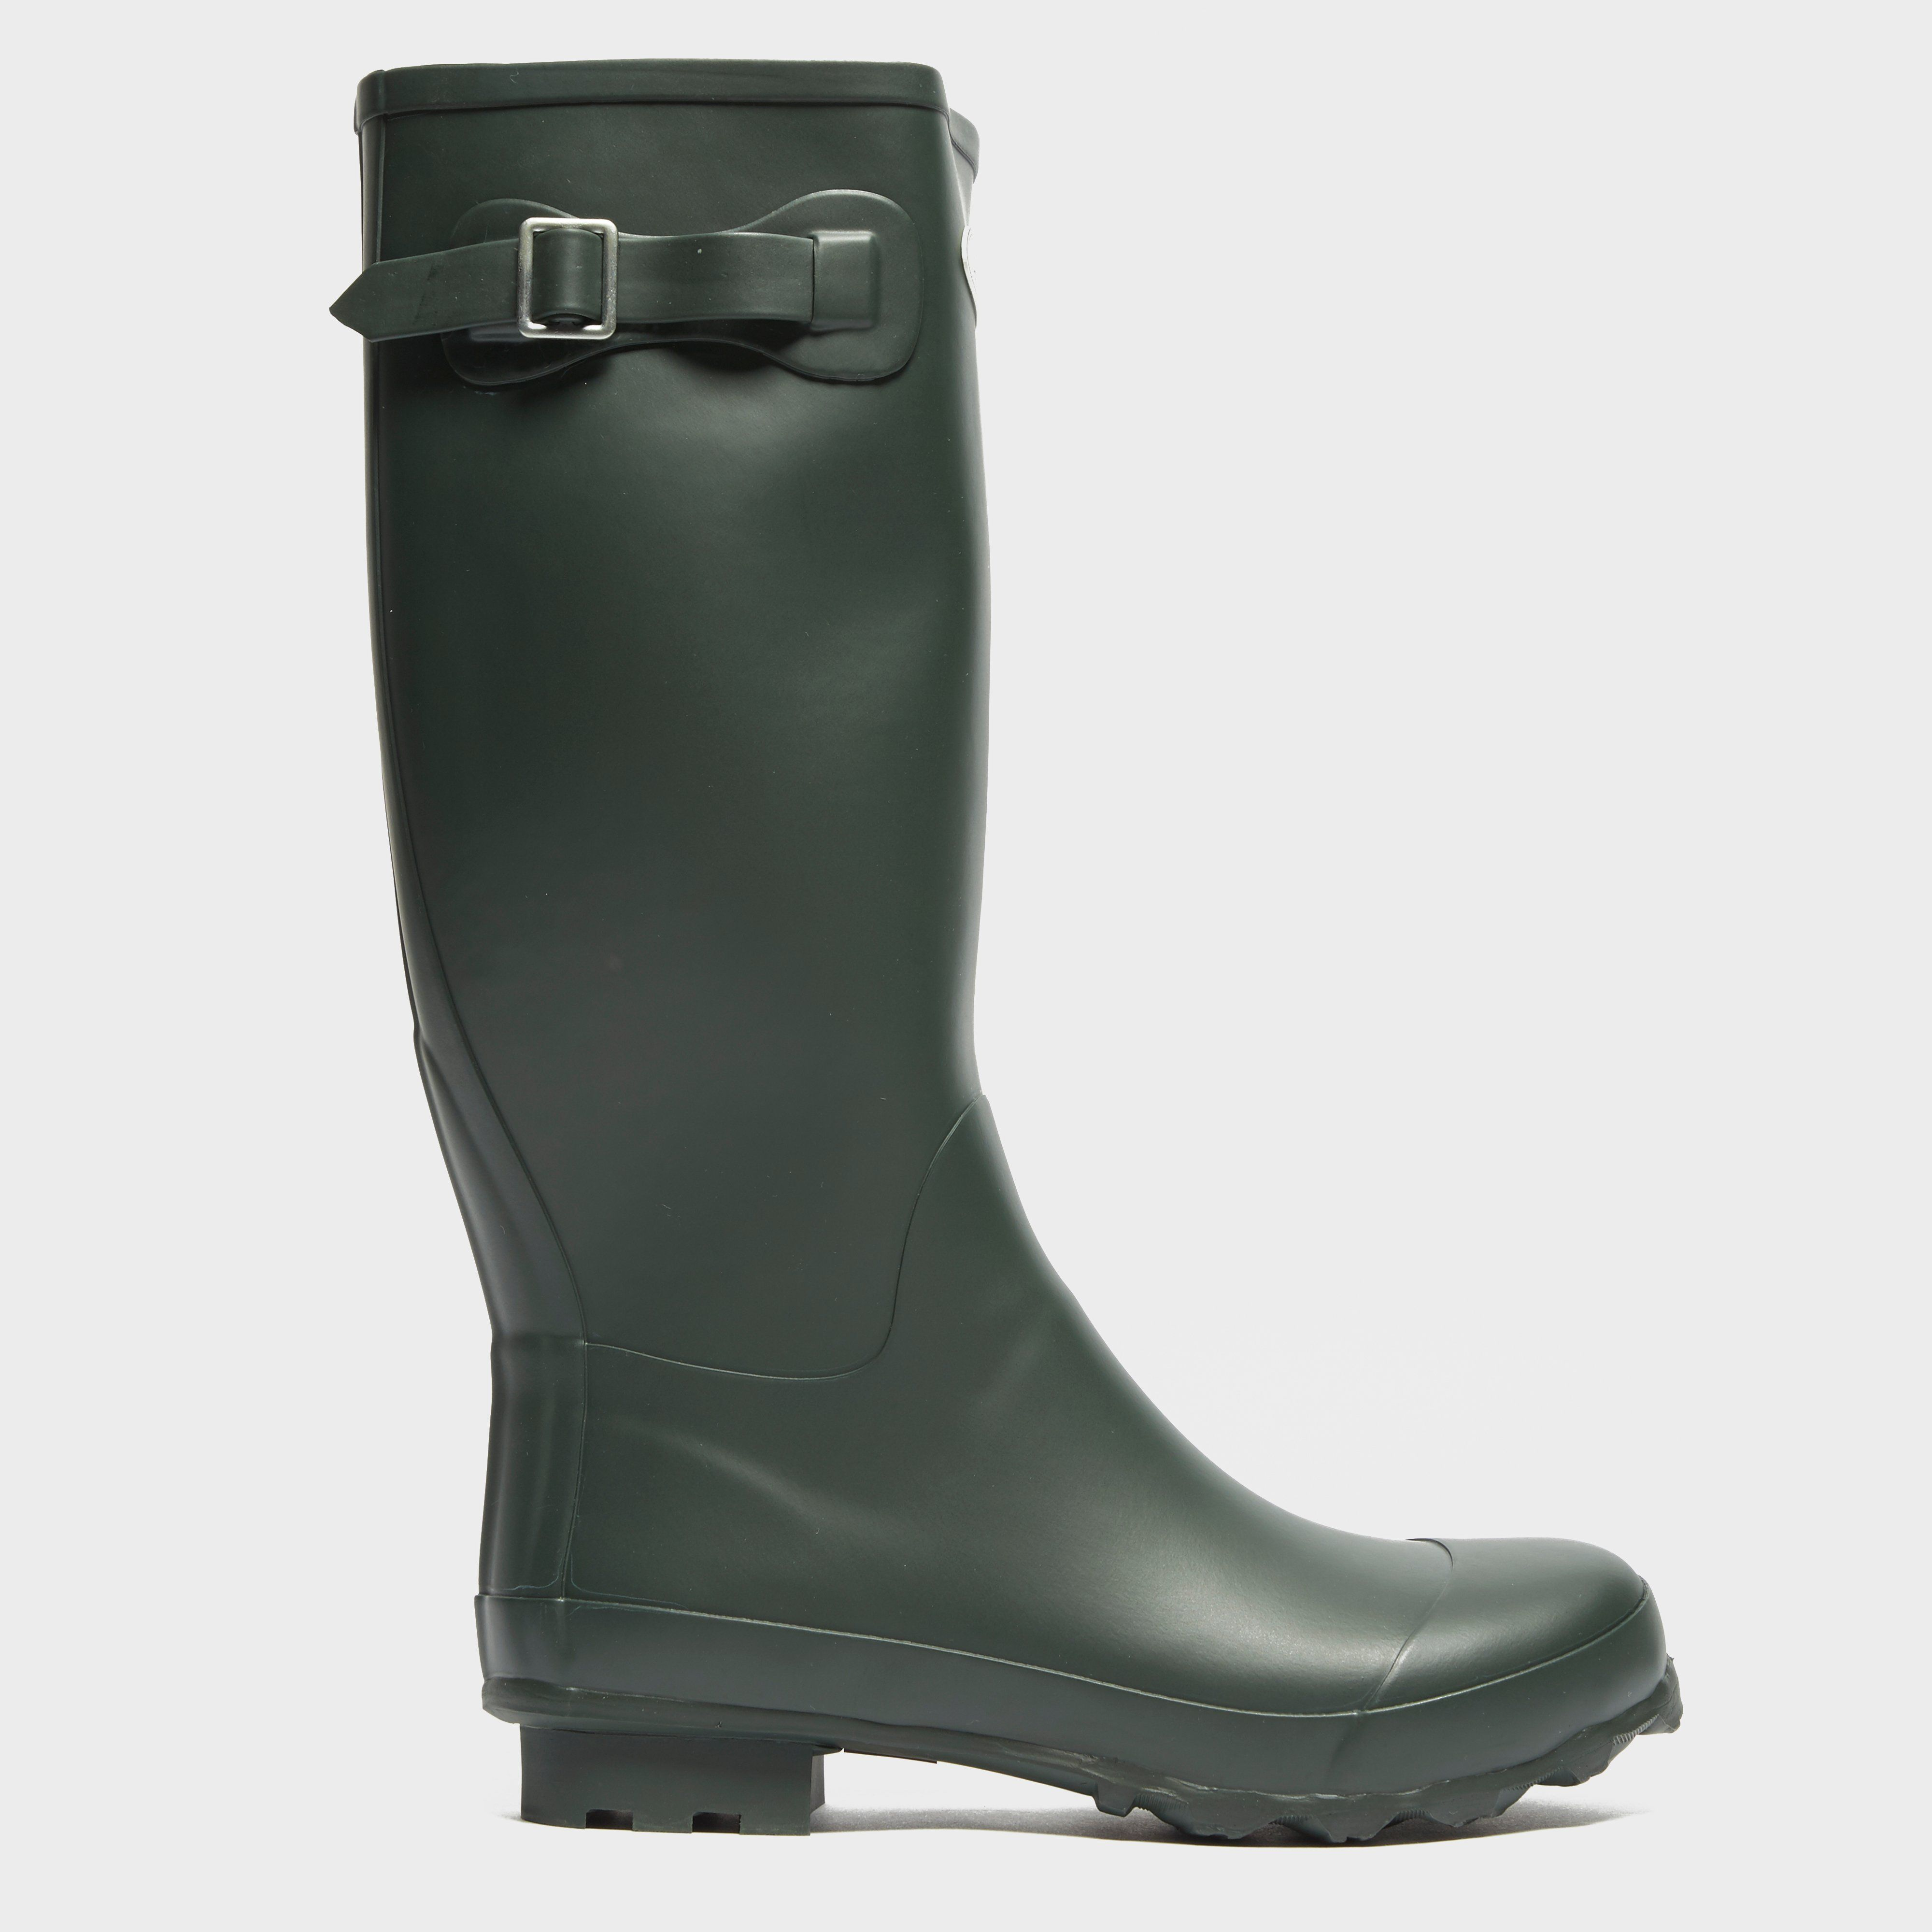 HUNTER Unisex Wellies